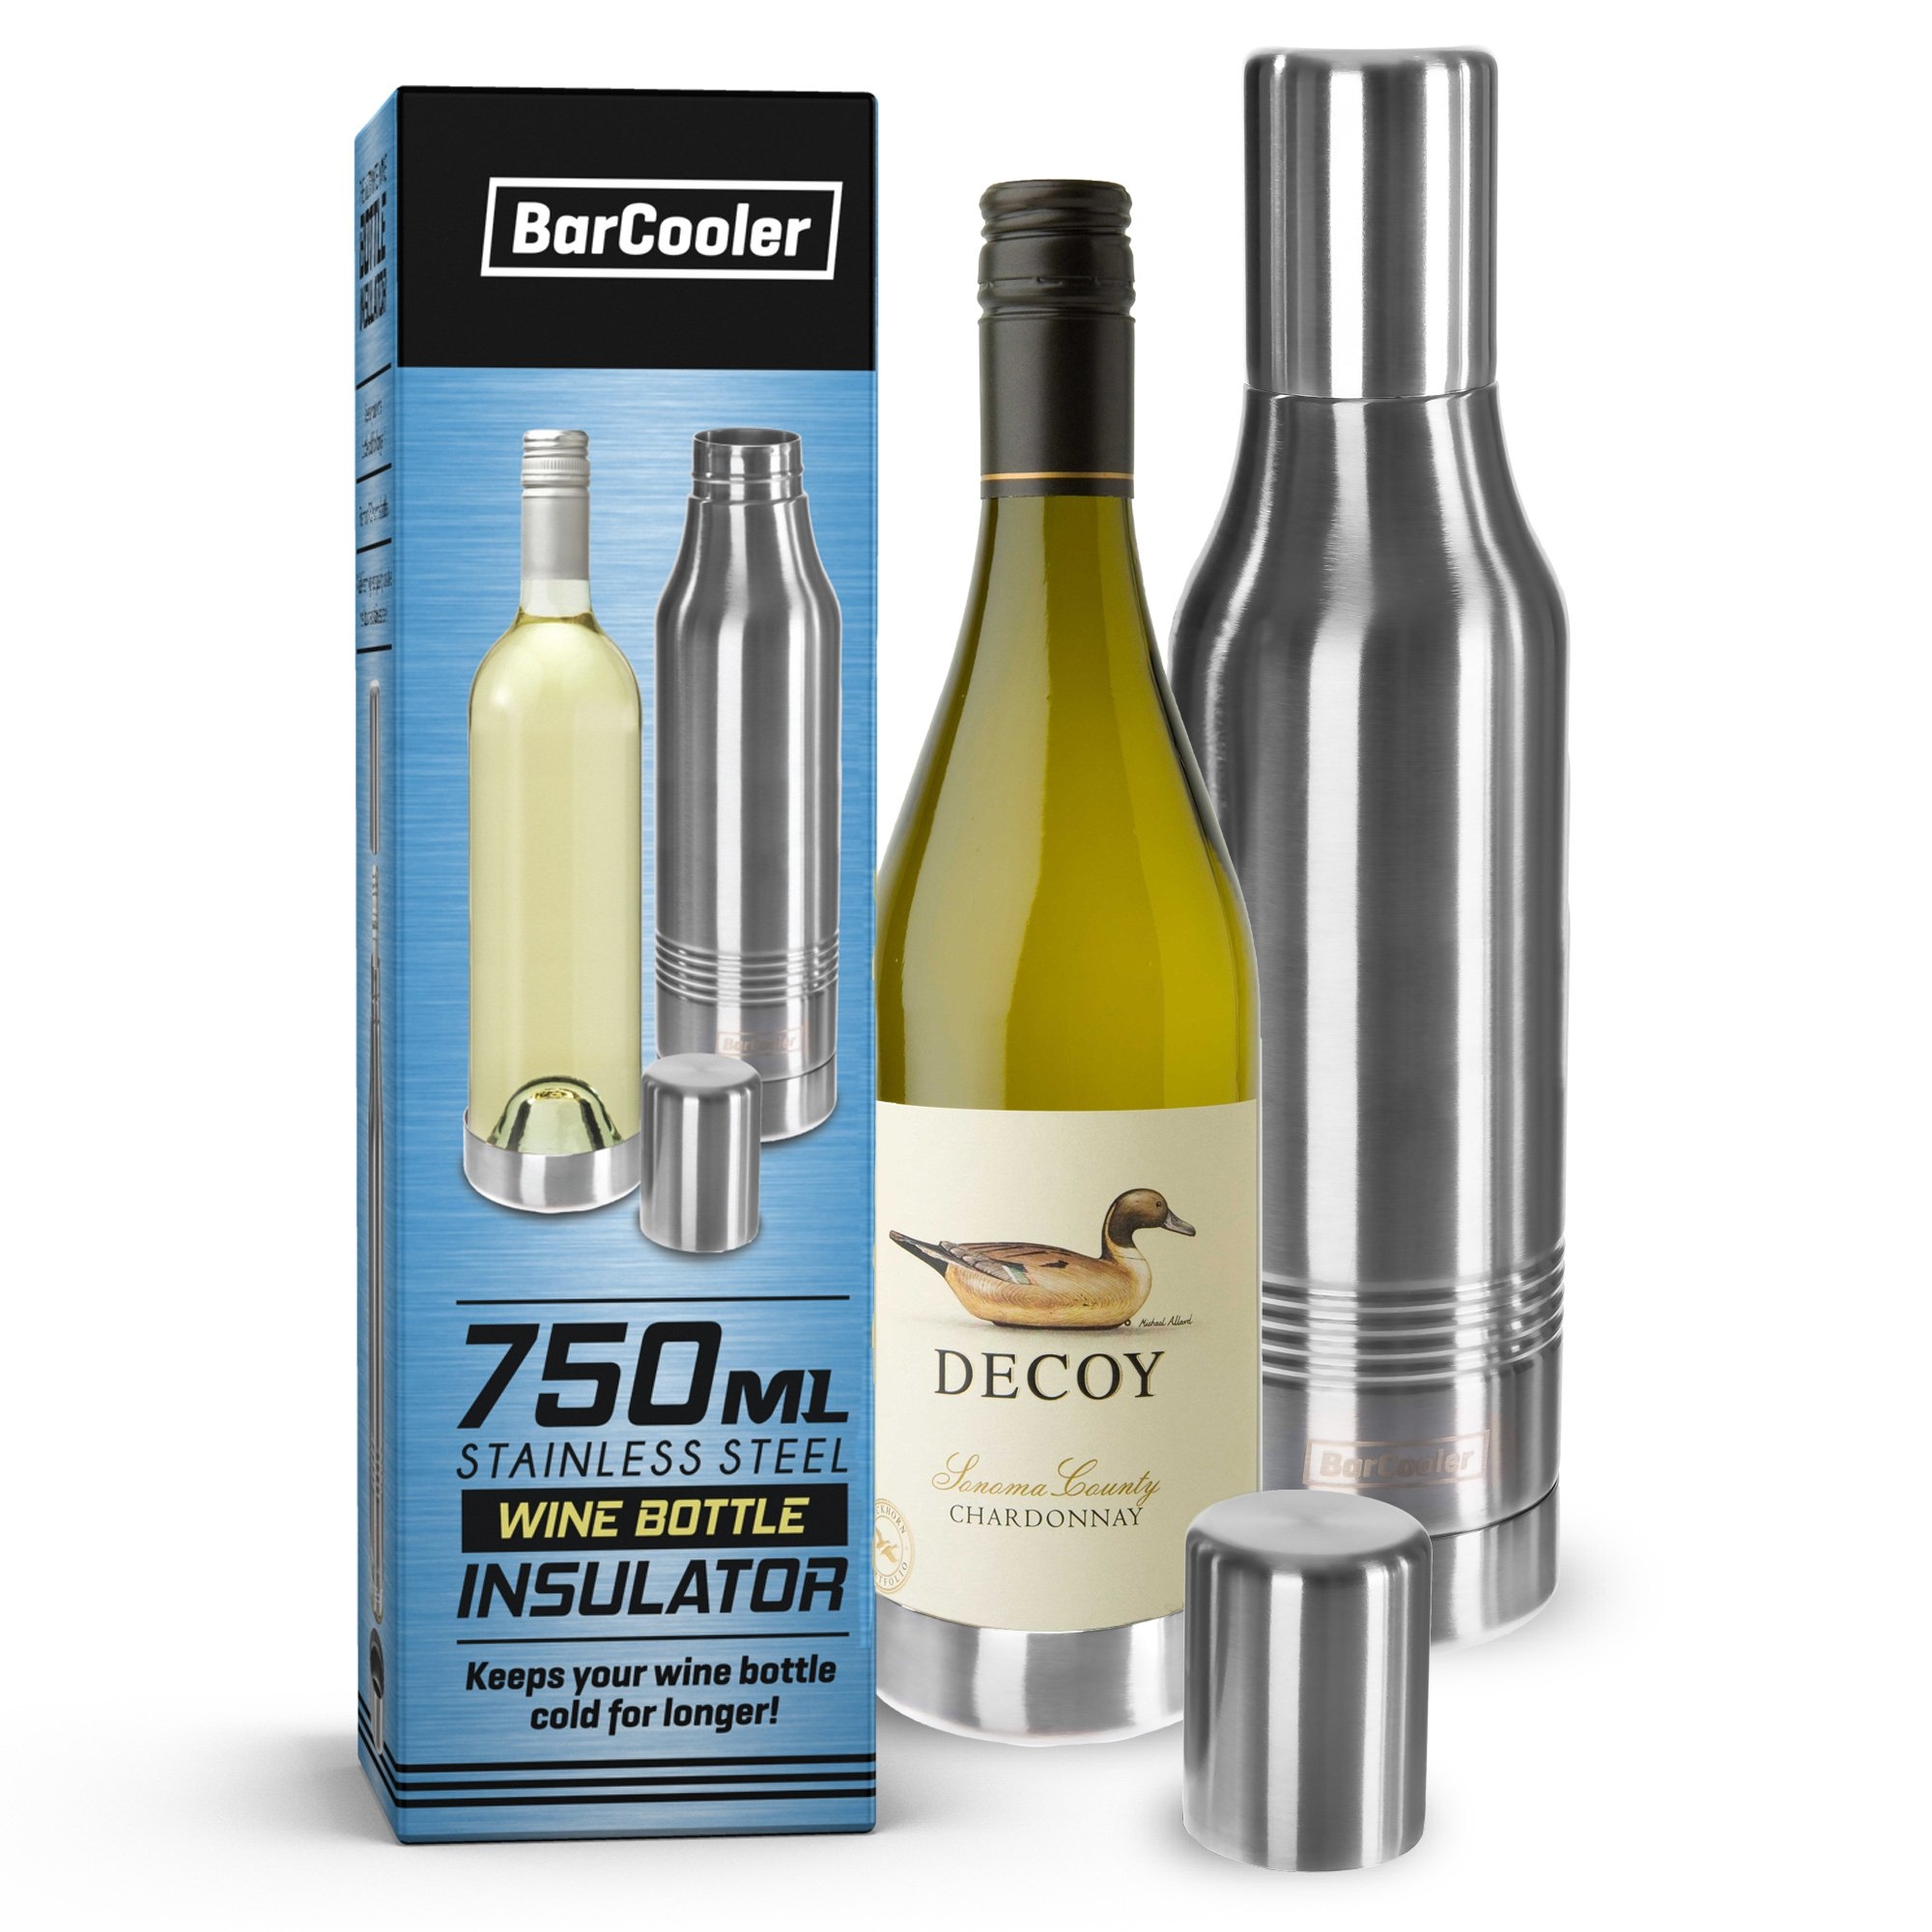 BarCooler Stainless Steel Wine Bottle Holder Double Wall Stainless Steel Cooler Keeps Your Wine Cold. Great Gift For Wine Lovers ! Fits Most Wine Bottles. Includes free E-Book + Gift Box.